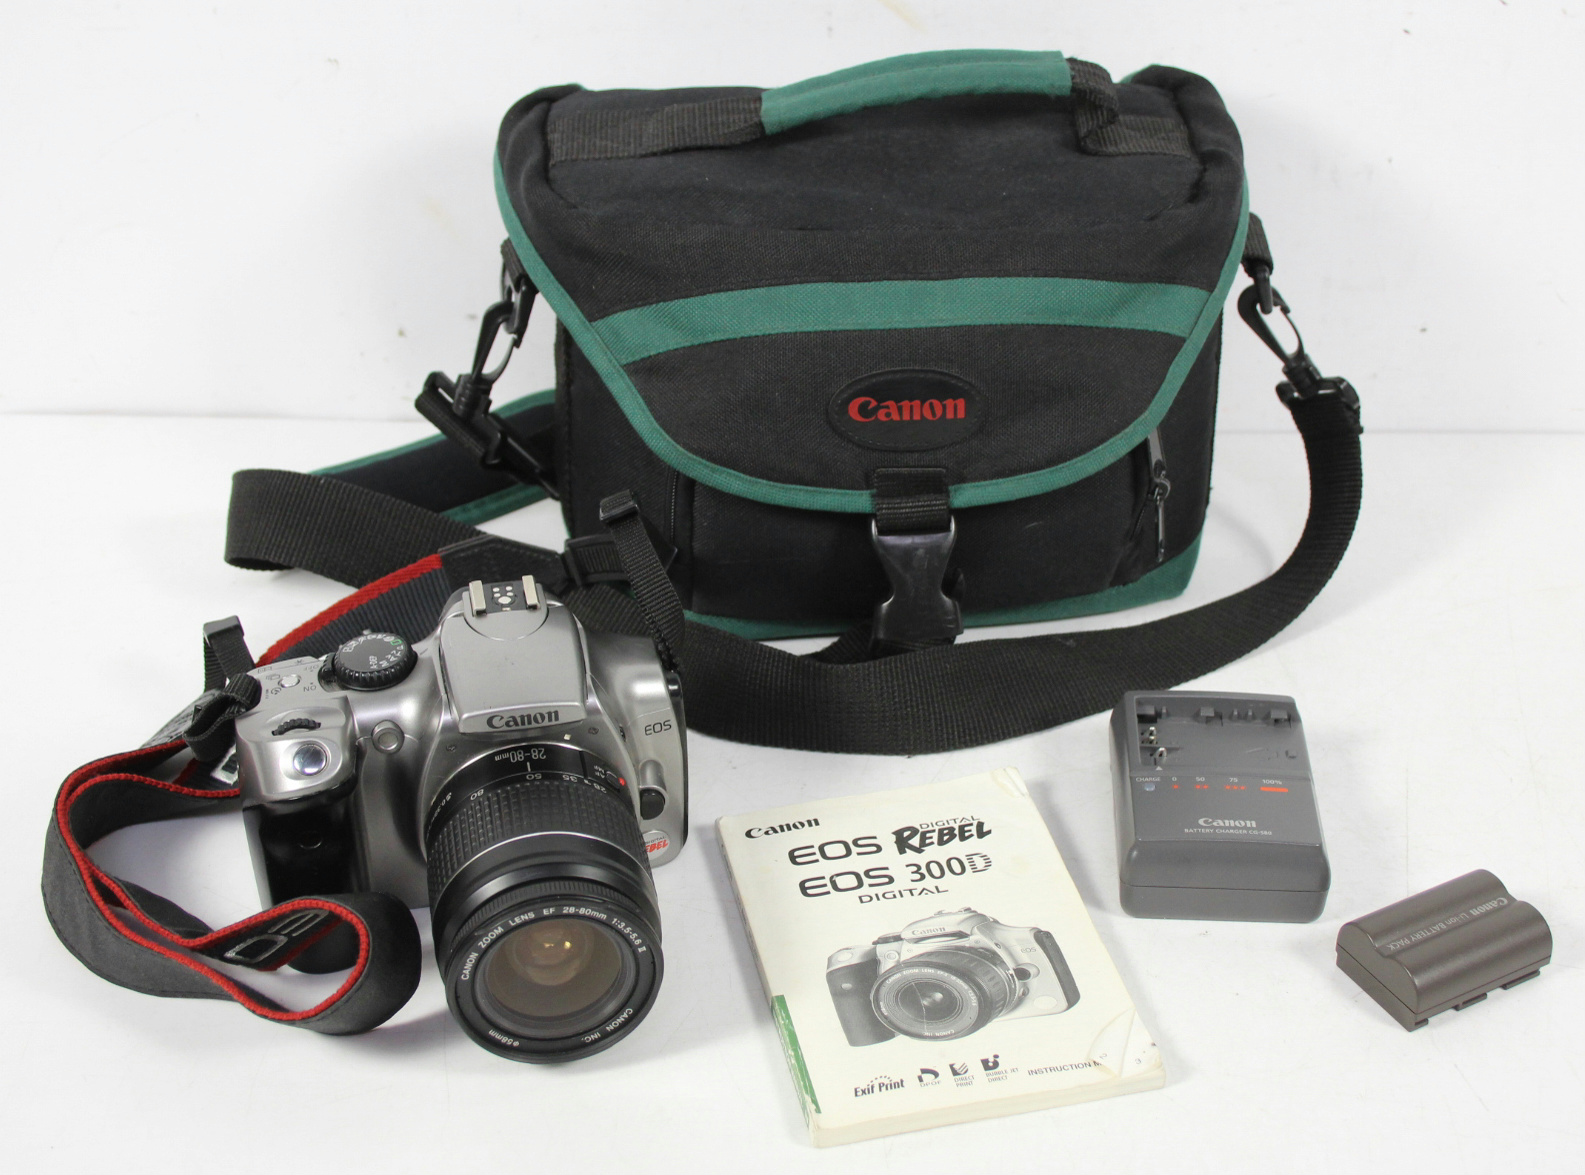 Canon Eos 300d camera Manual